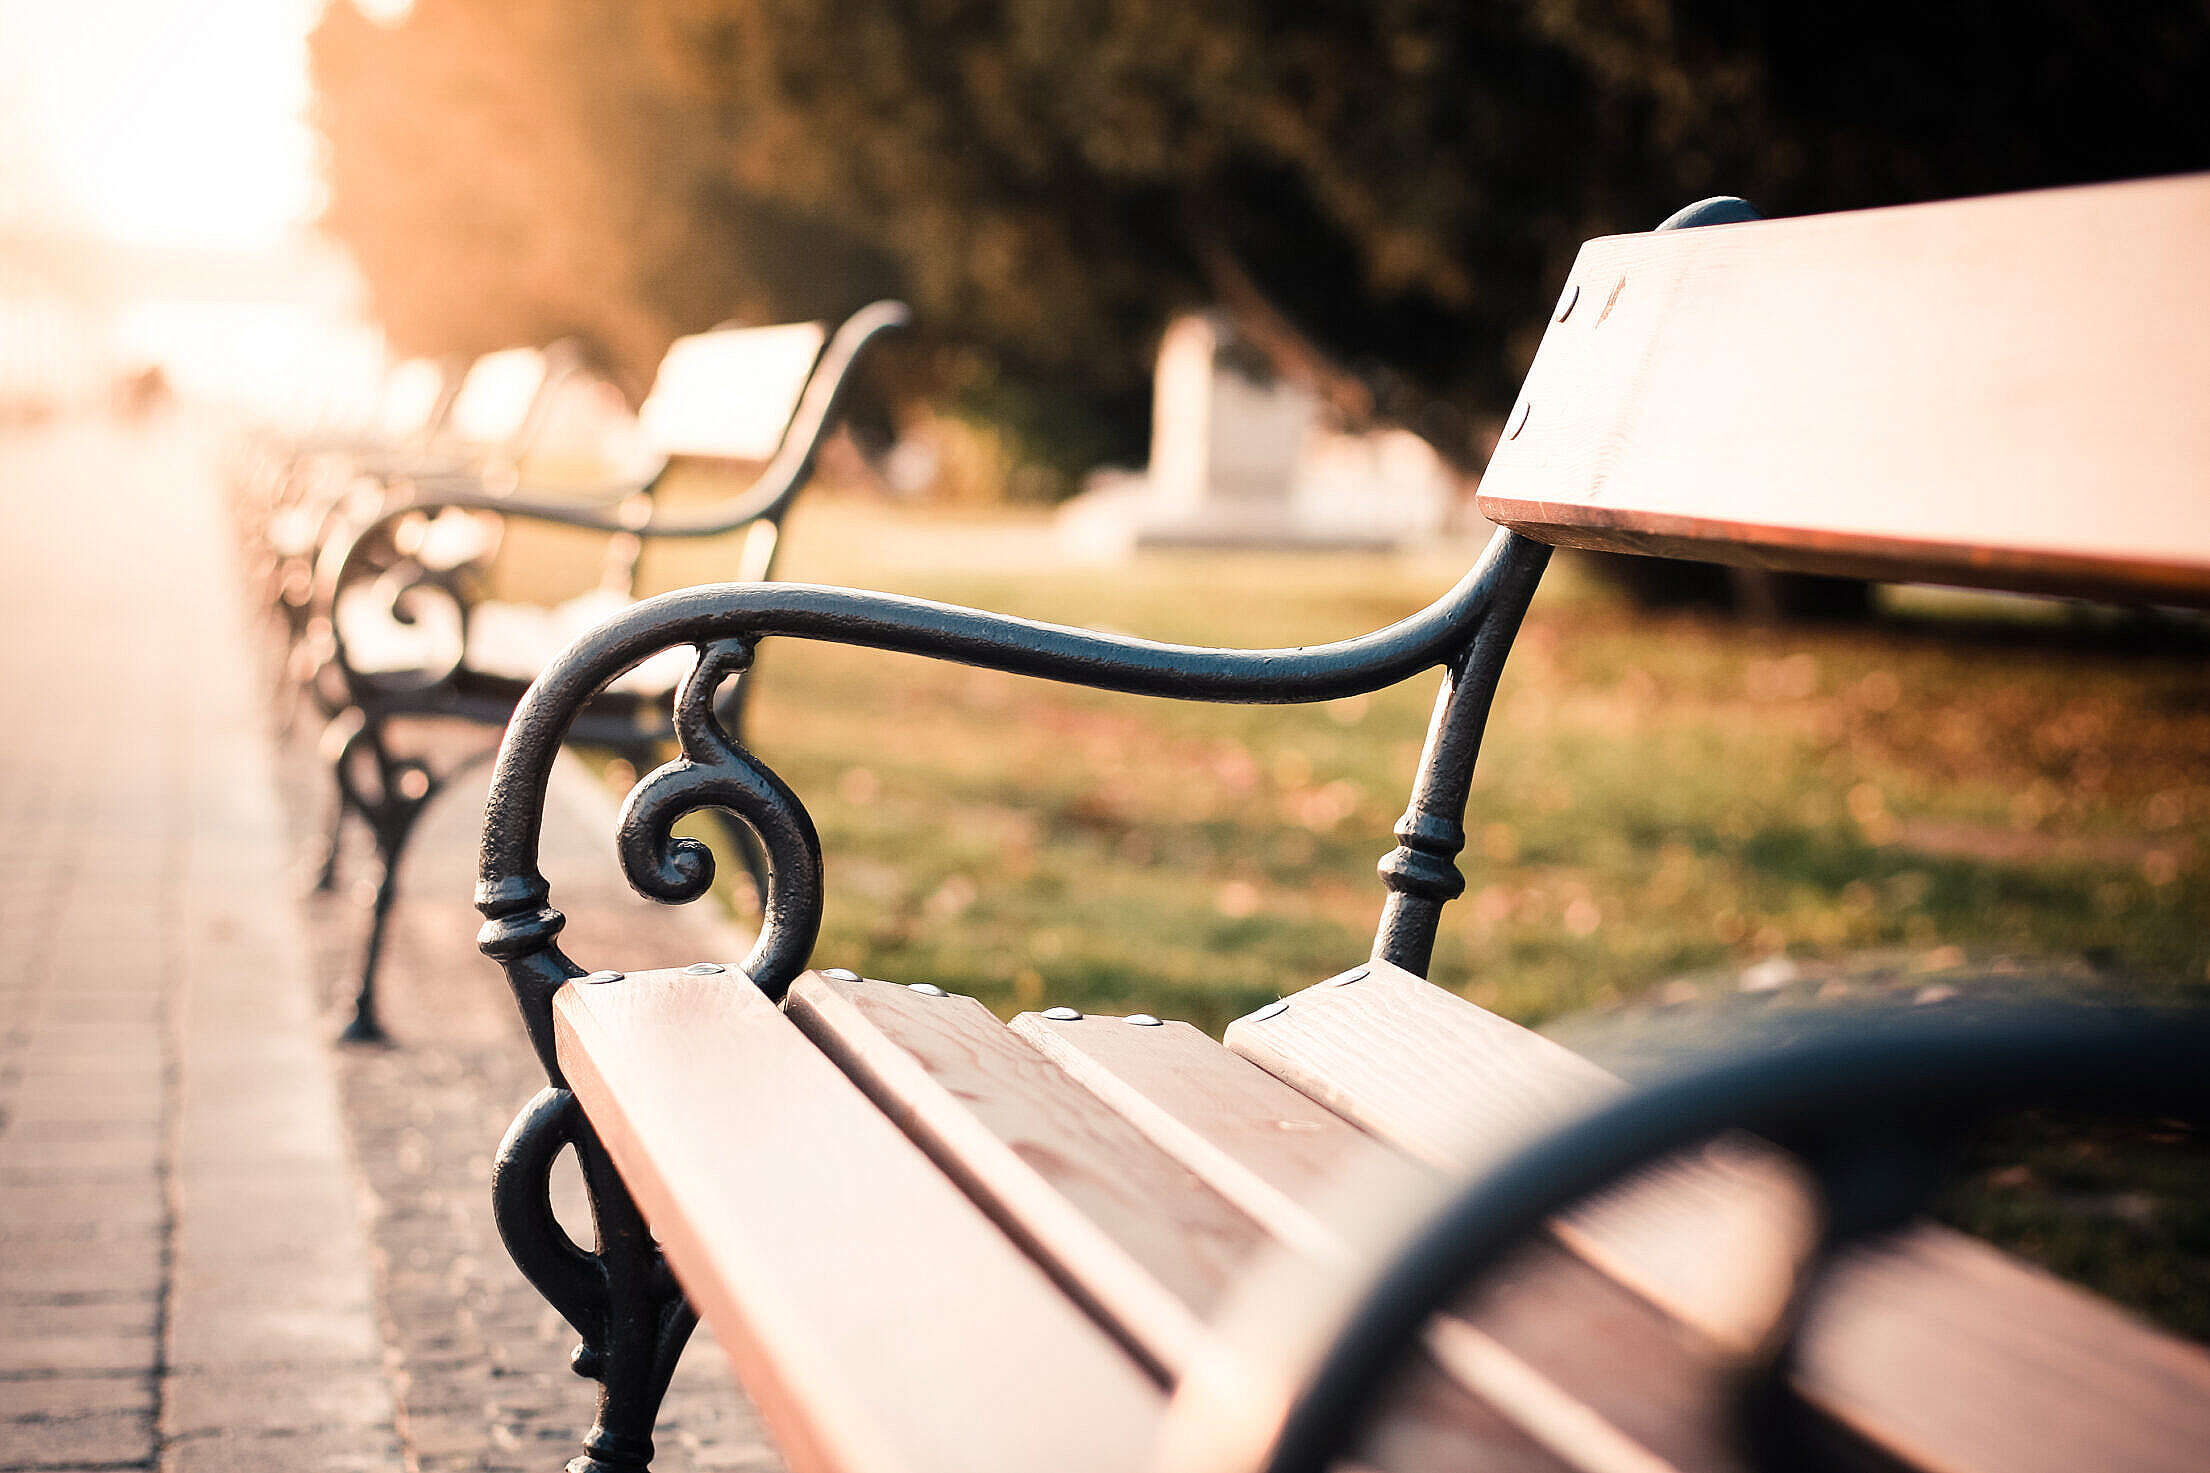 Vintage Old City Bench Free Stock Photo